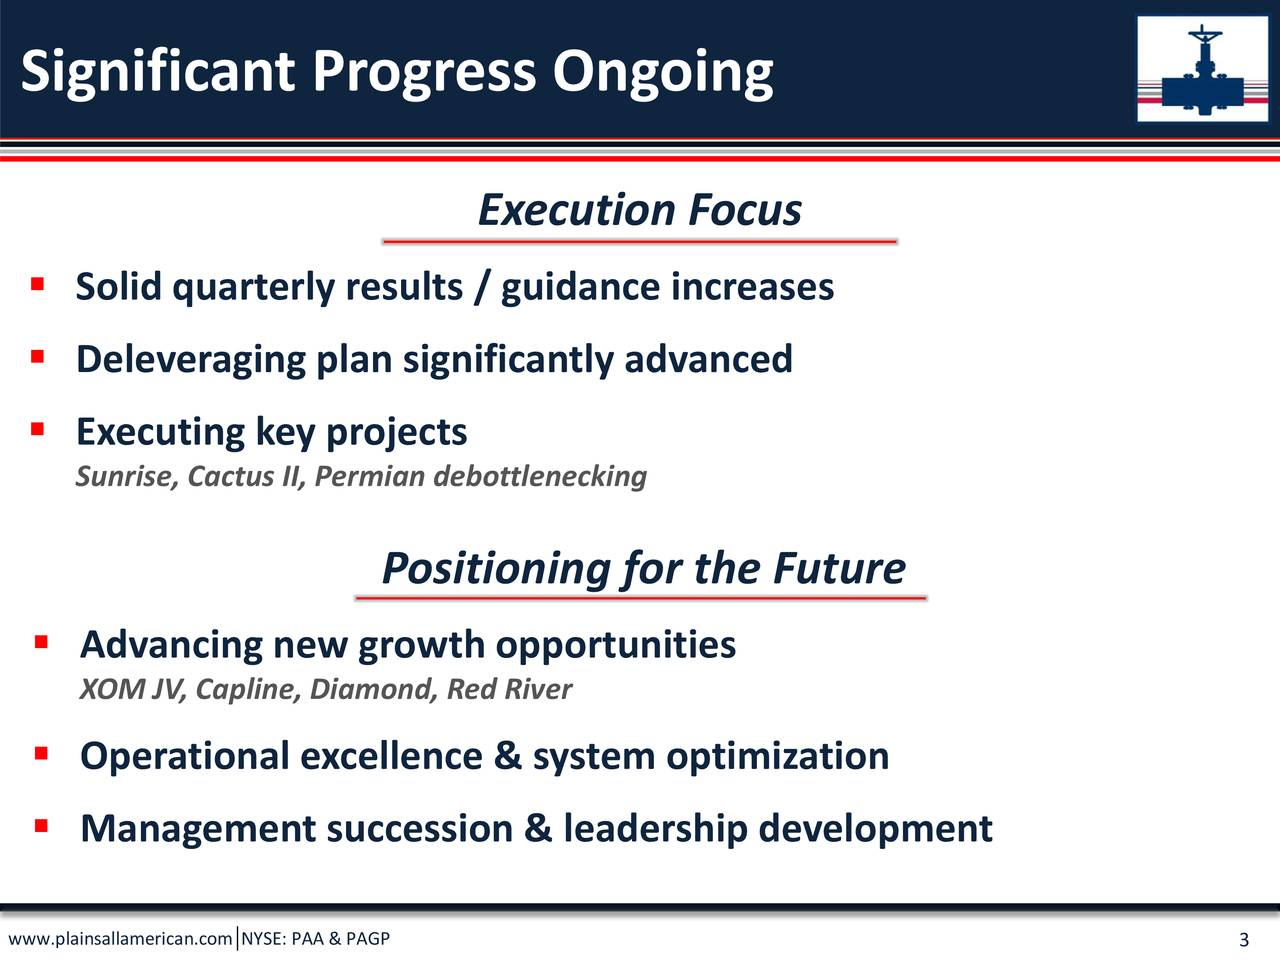  Reduced total debt >$1.8 B (reduced leverage ~1.5x) from 9/30/18  Closed >$1.5 billion in asset sales  Consistent quarterly operating and financial results  Multiple qtly guidance increases  Short-term S&L margin opportunity (additive to financial flexibility)  Placed Sunrise into early service 4Q18  Sanctioned Cactus II with construction advancing on schedule  Announced / advancing XOM JV project  Advancing additional capital efficient growth projects (Capline, Diamond & Red River expansions)  Completed successful CEO transition